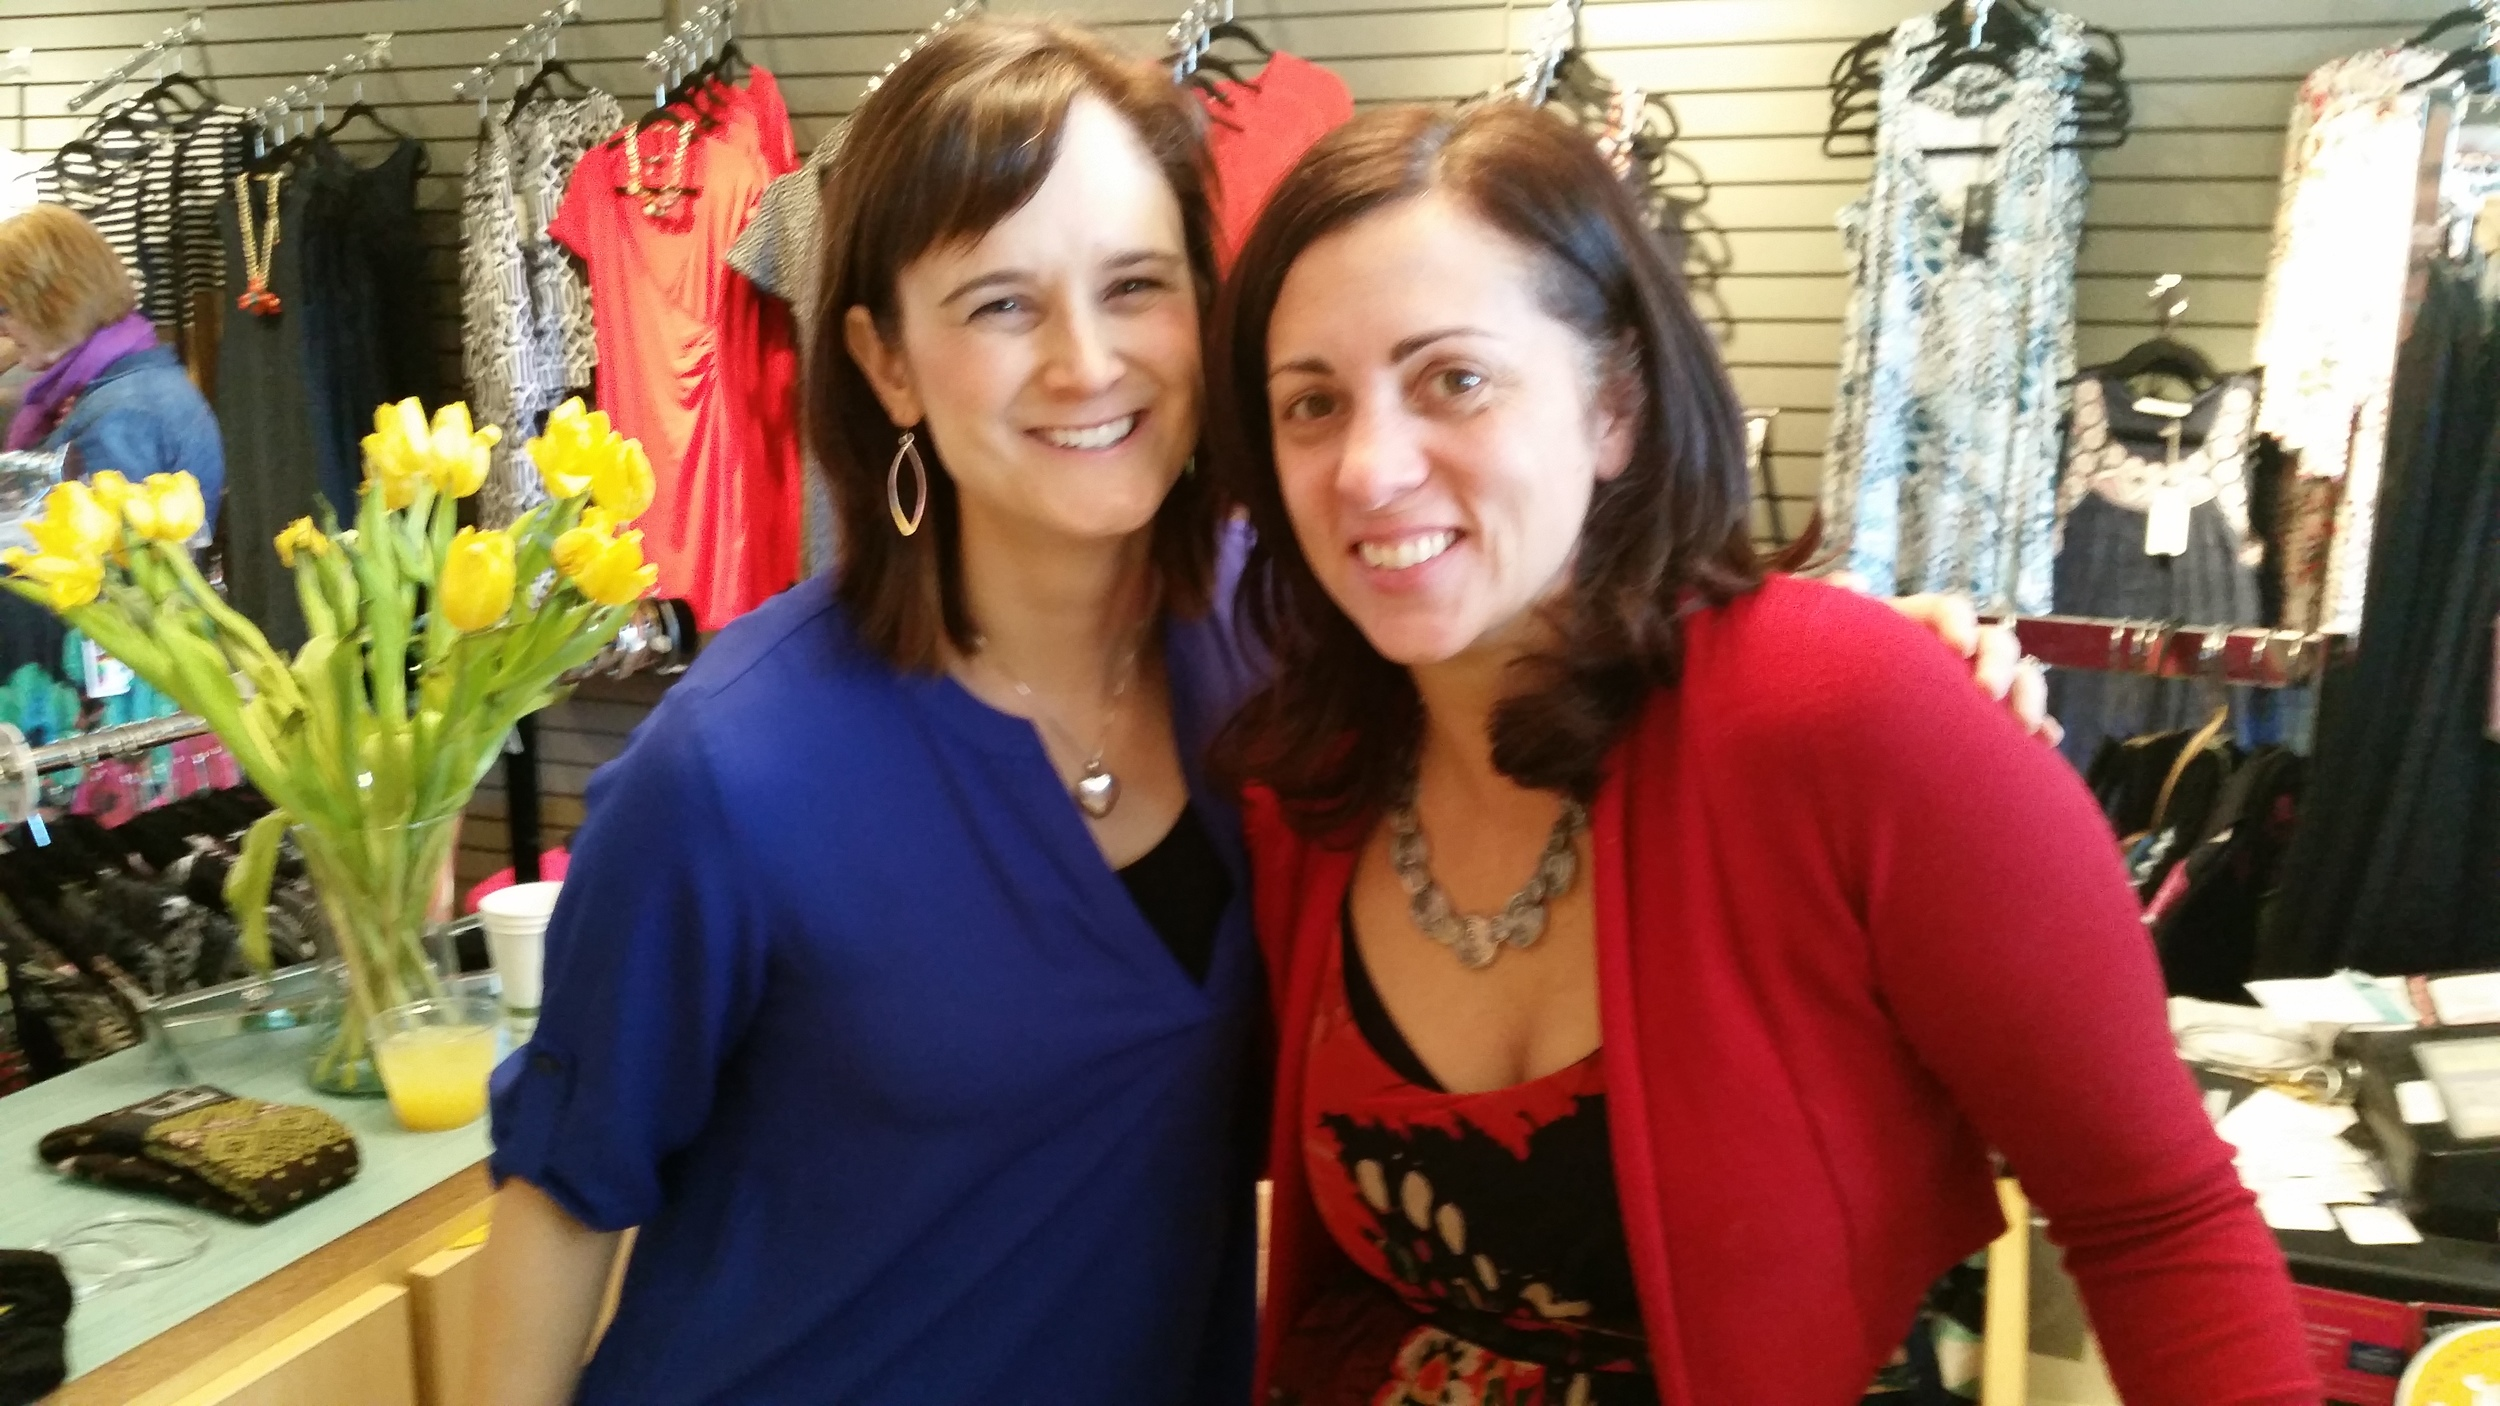 Amanda Hedin, Founder Eden's Garden and Jill Henderson, Owner of Poppy Togs and Clogs.